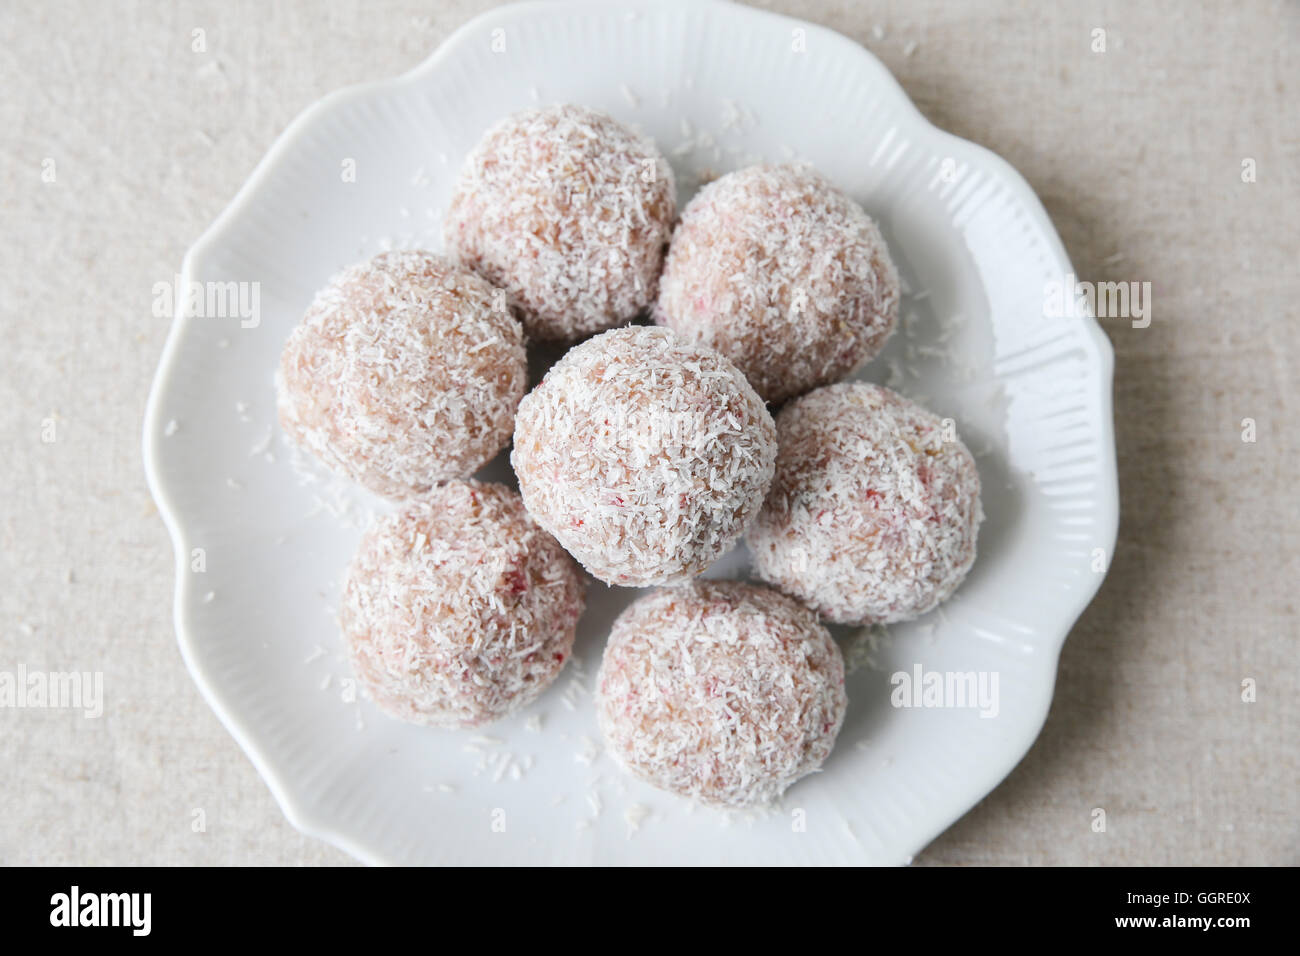 Homemade strawberry, date, cashew and coconut bliss ball on vintage plate - Stock Image